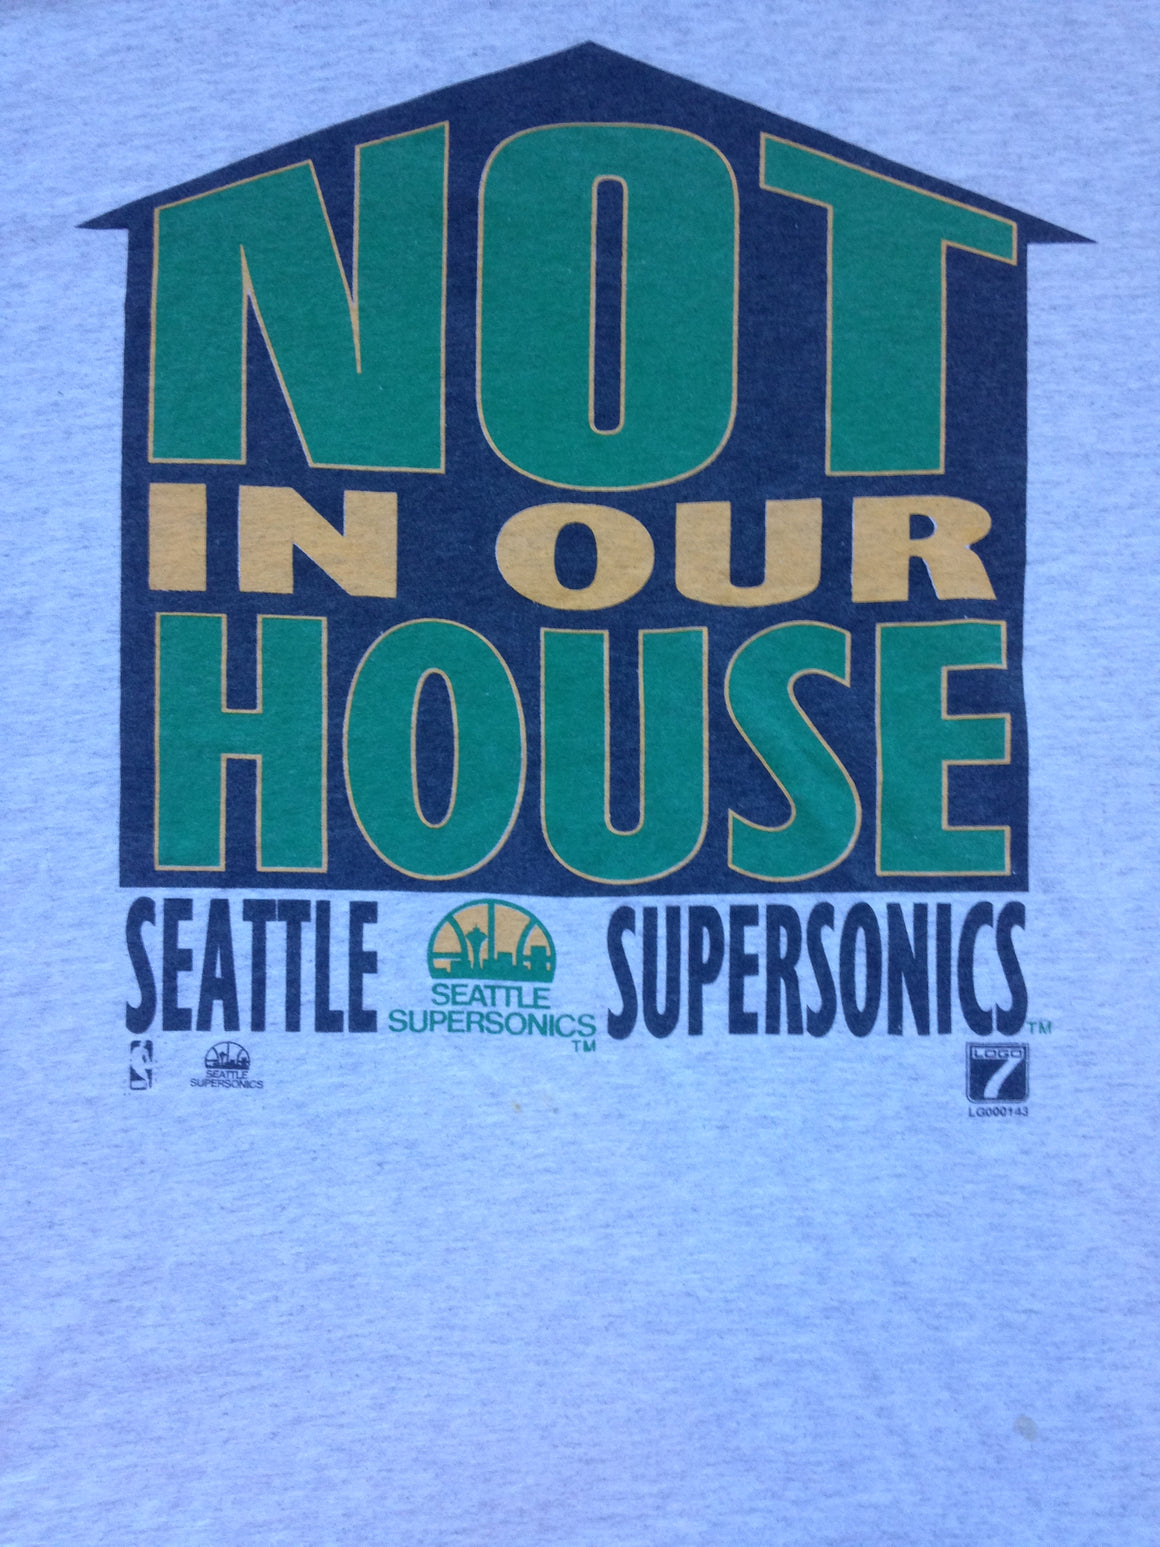 '90s Seattle Supersonics NOT IN OUR HOUSE t shirt - XL